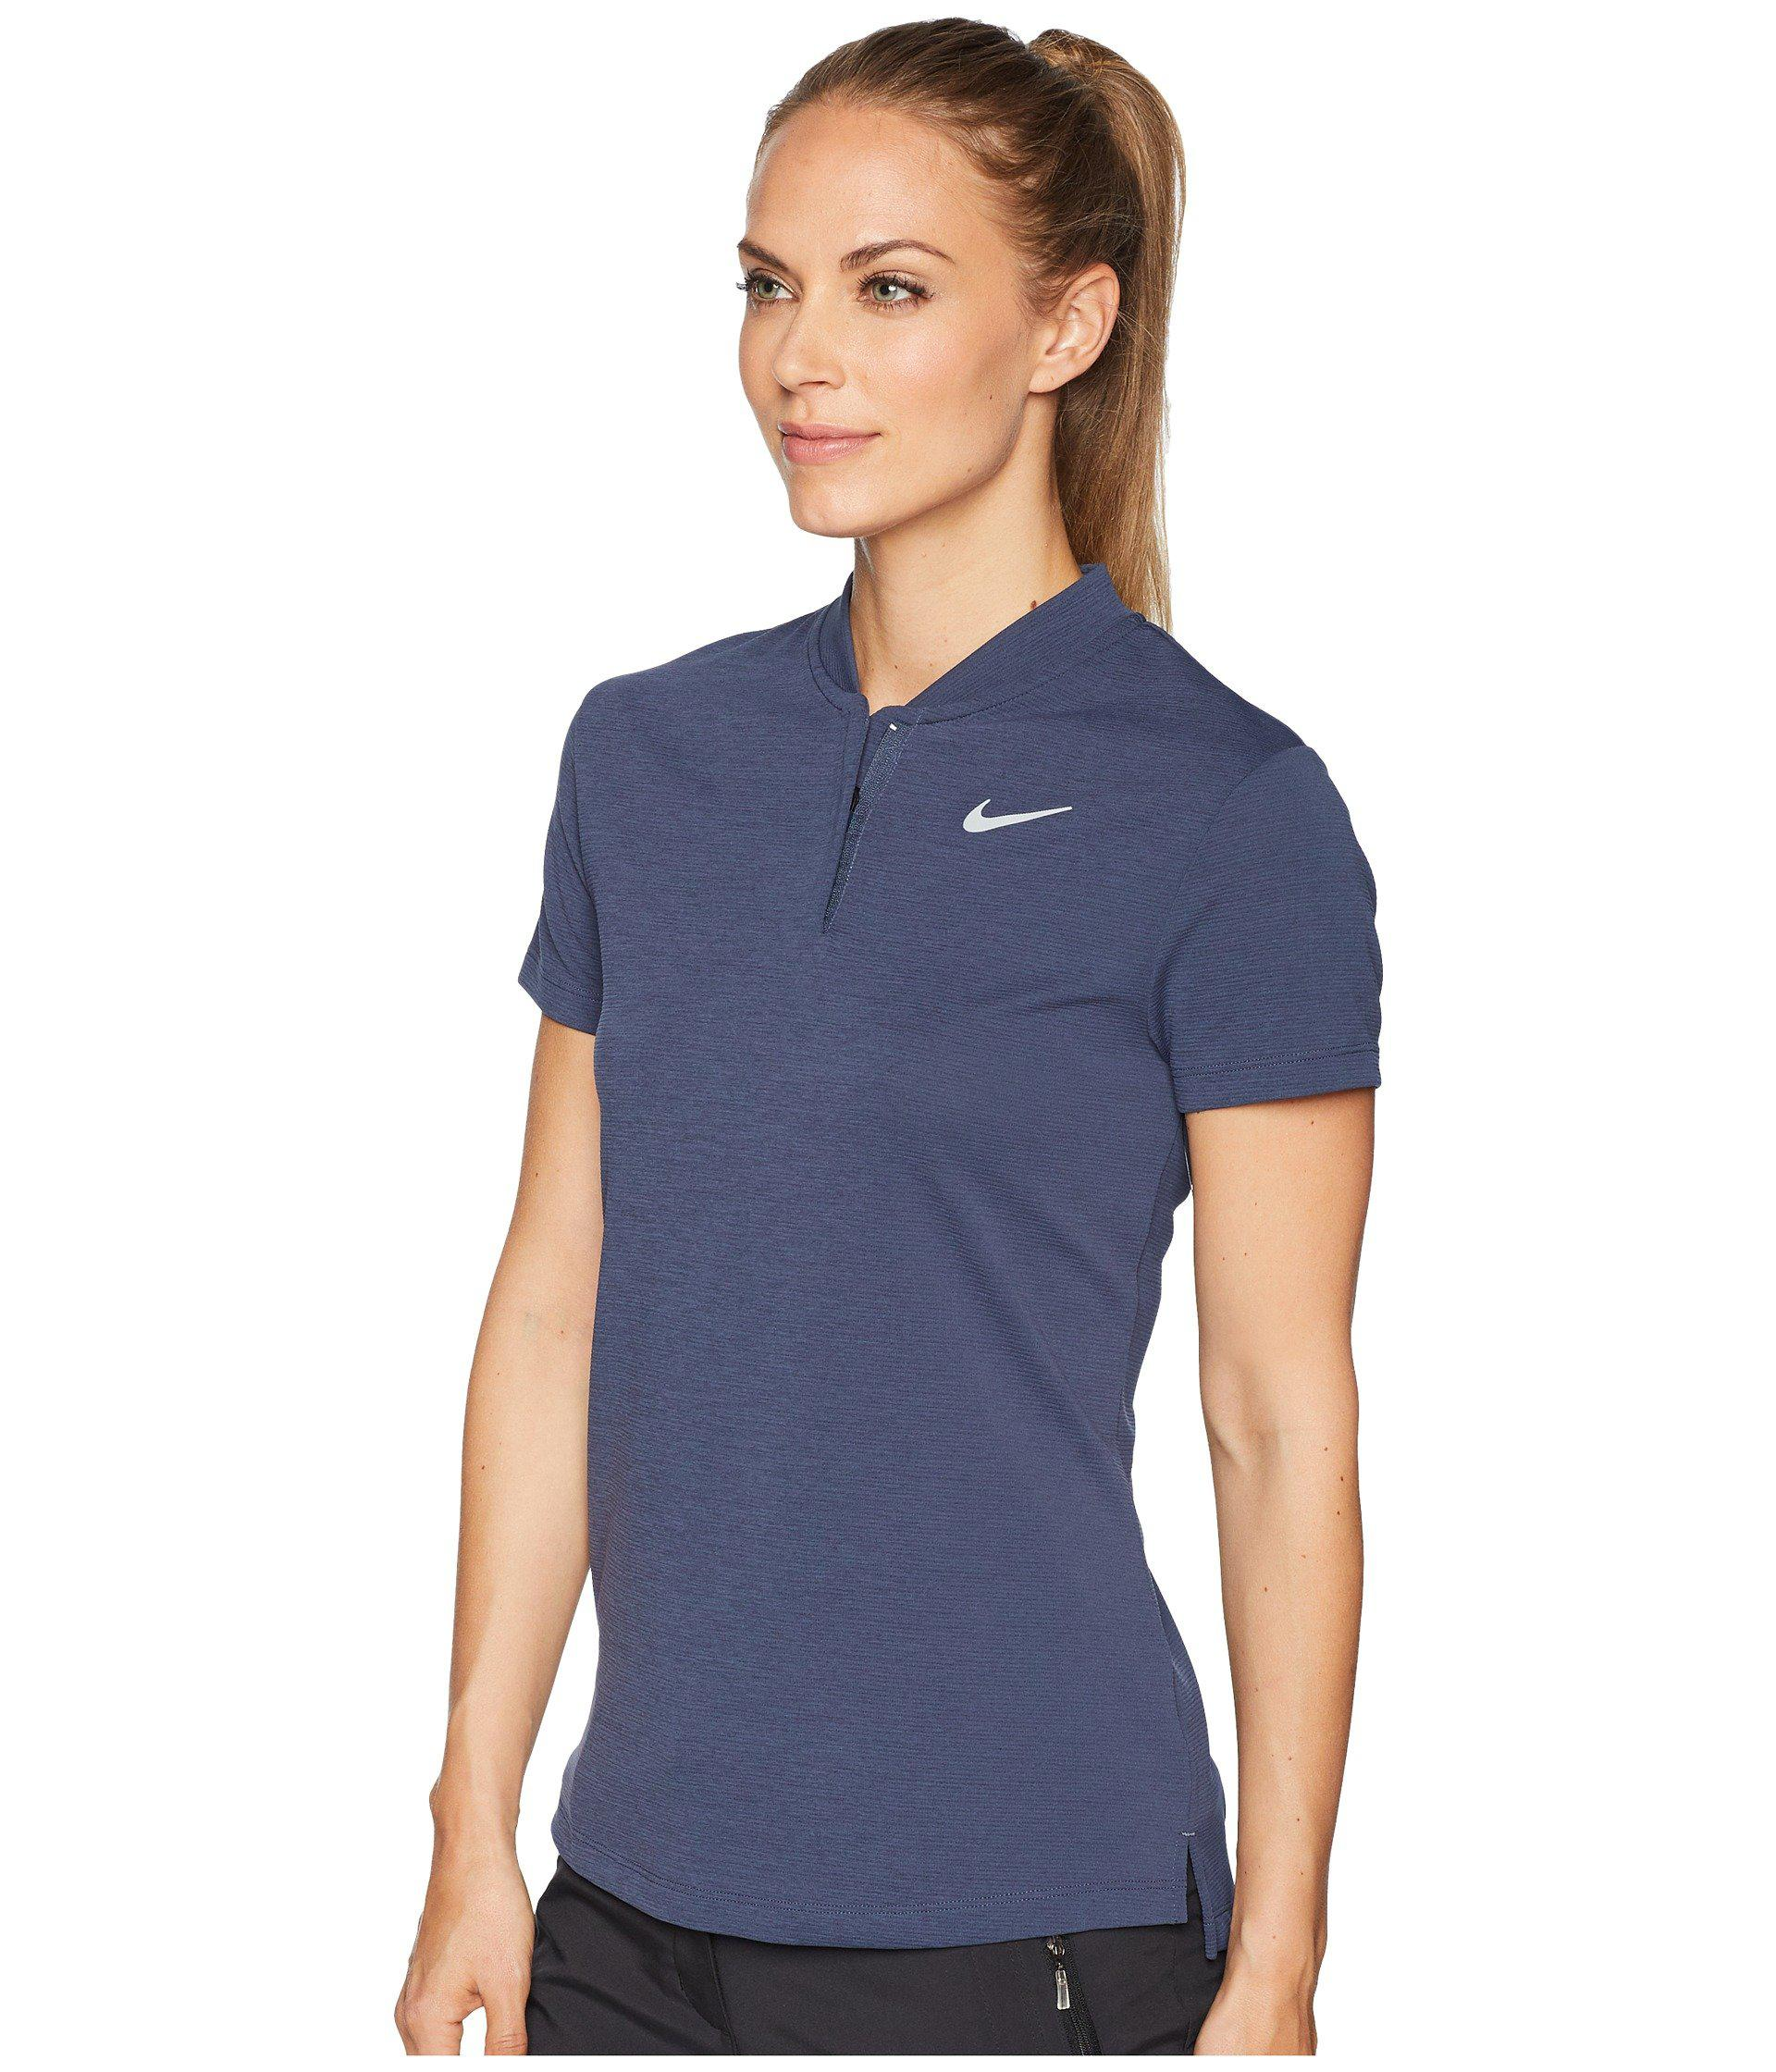 f9c90c78 Nike - Blue Aeroreact Polo Short Sleeve - Lyst. View fullscreen